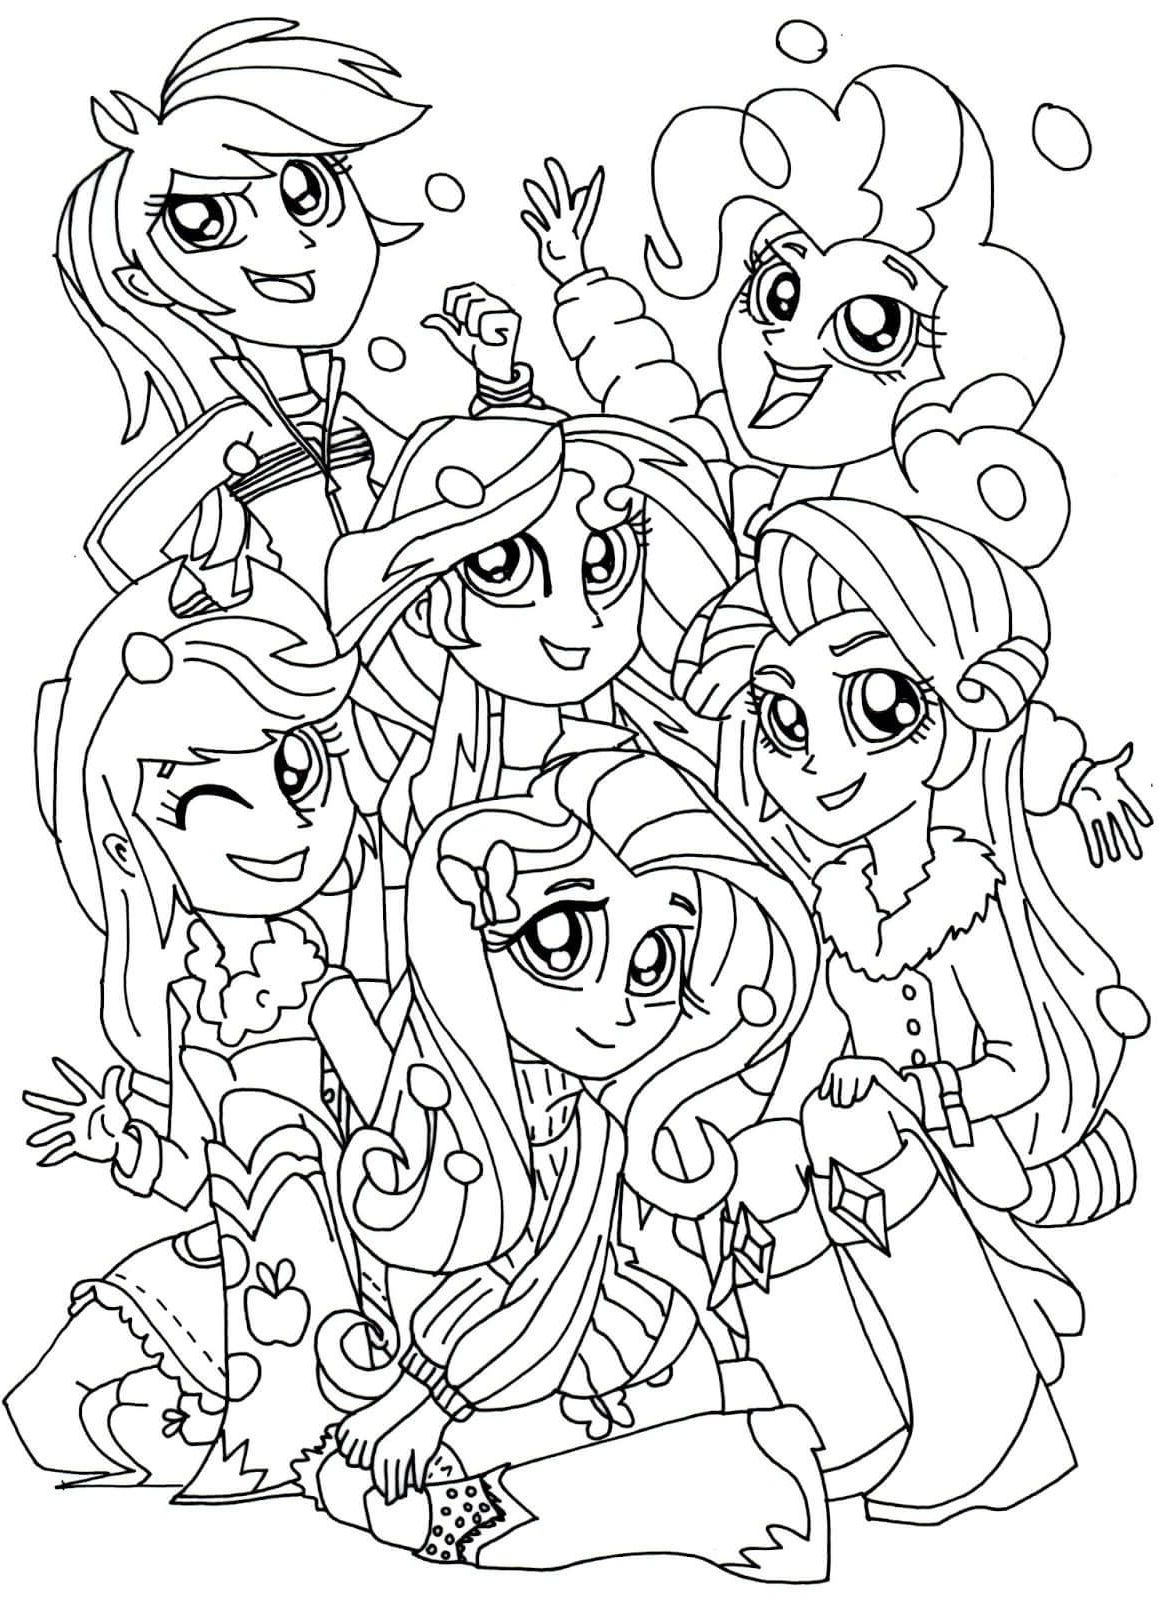 Equestria Girls Coloring Pages Jabn My Little Pony Equestria Girls